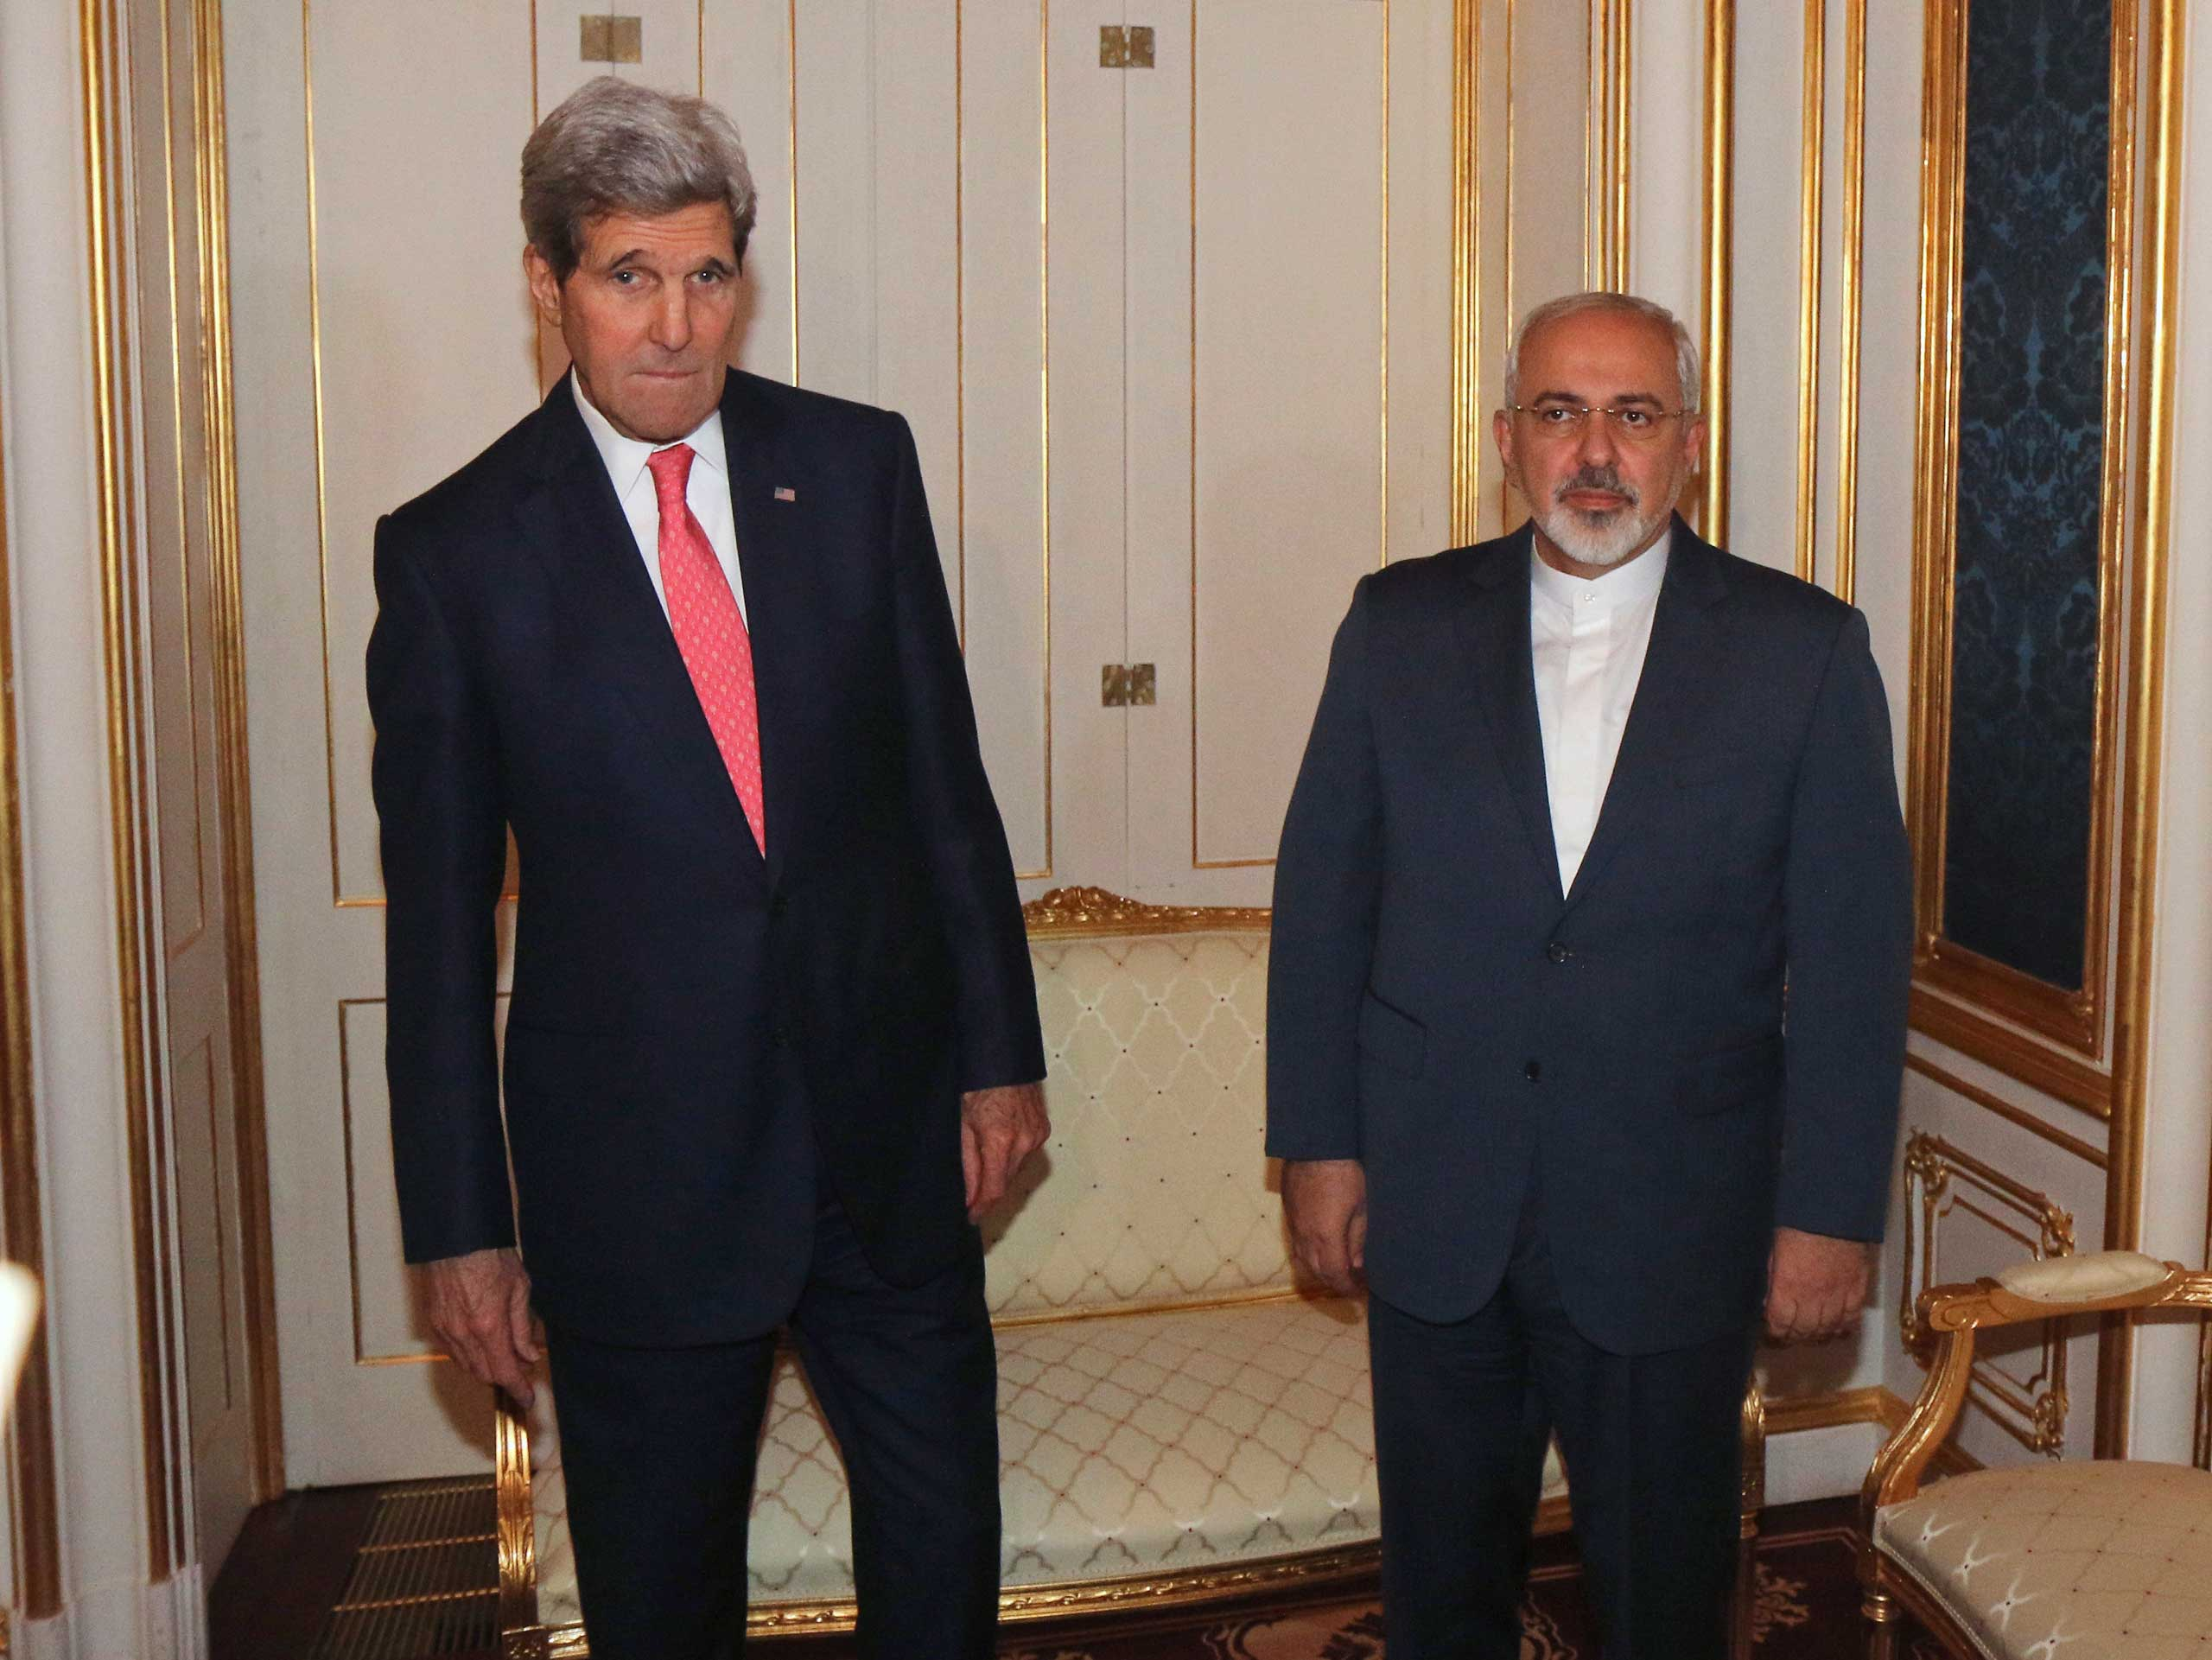 Secretary of State John Kerry and Iranian Foreign Minister Javad Zarif before a meeting in Vienna, Nov. 23, 2014.